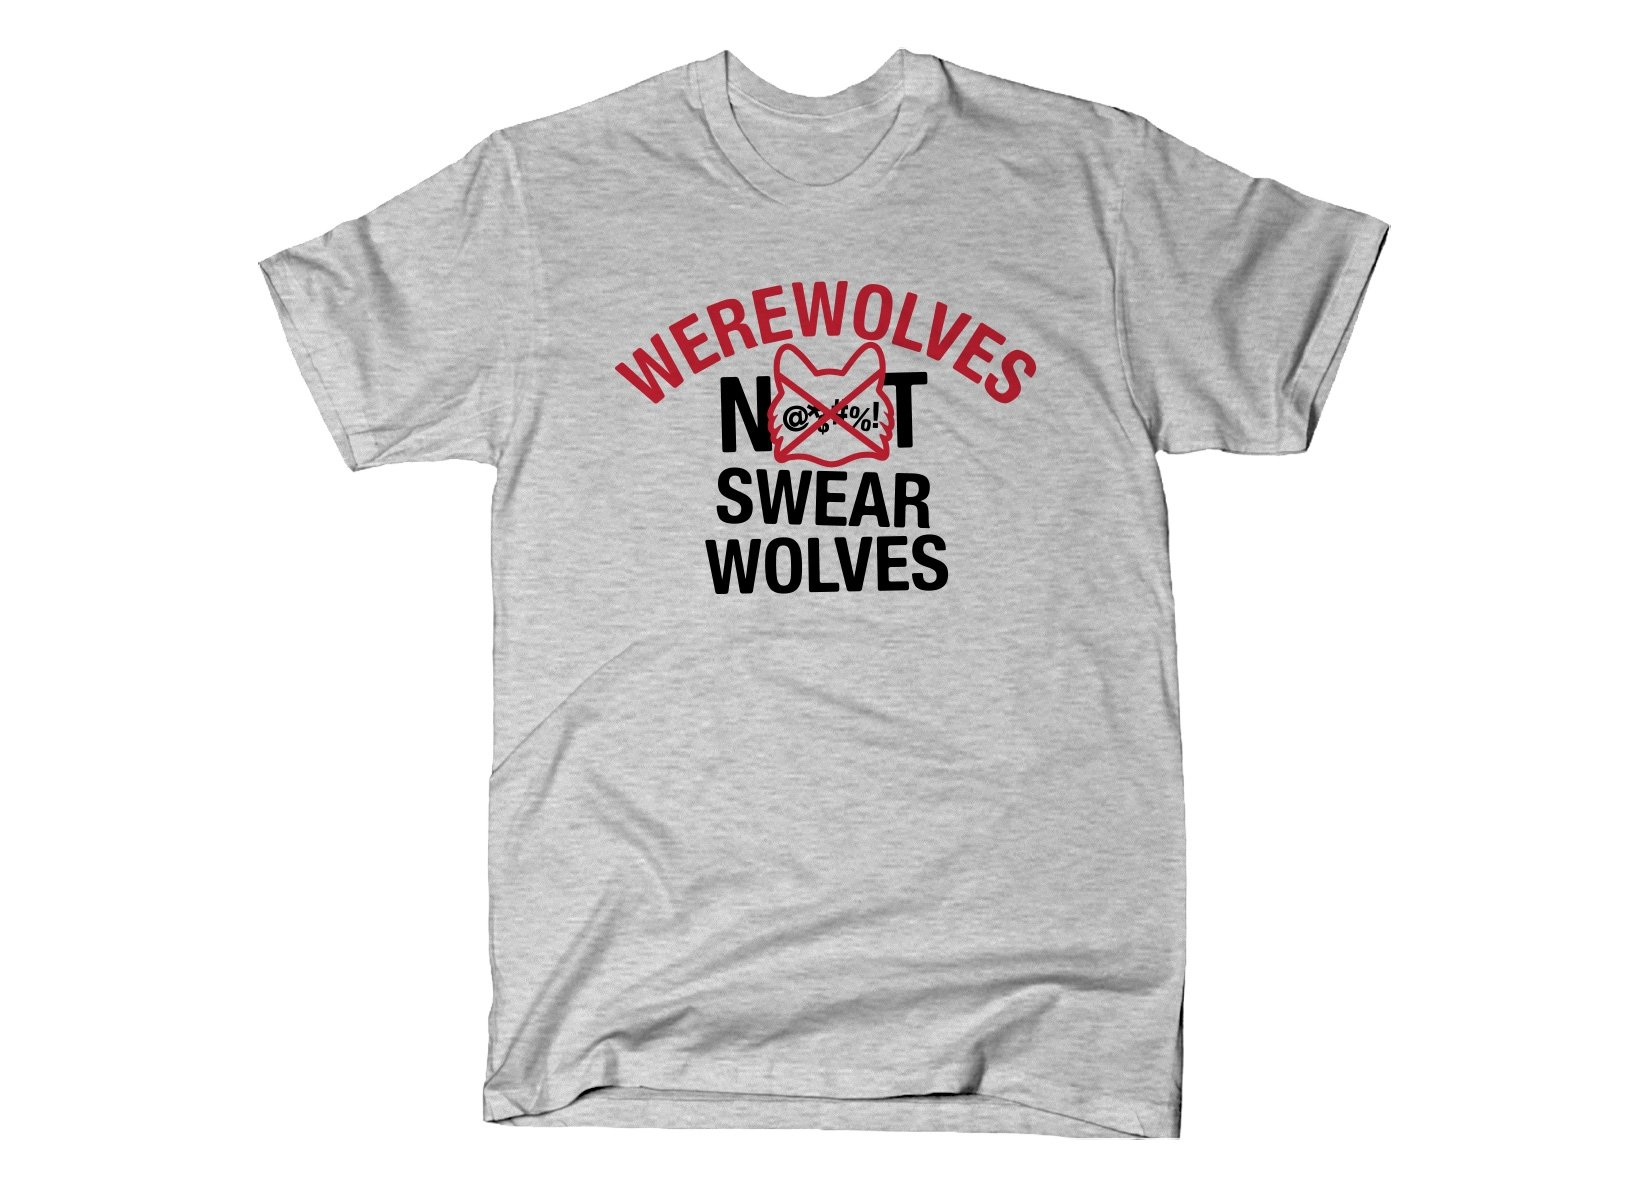 Werewolves Not Swearwolves on Mens T-Shirt